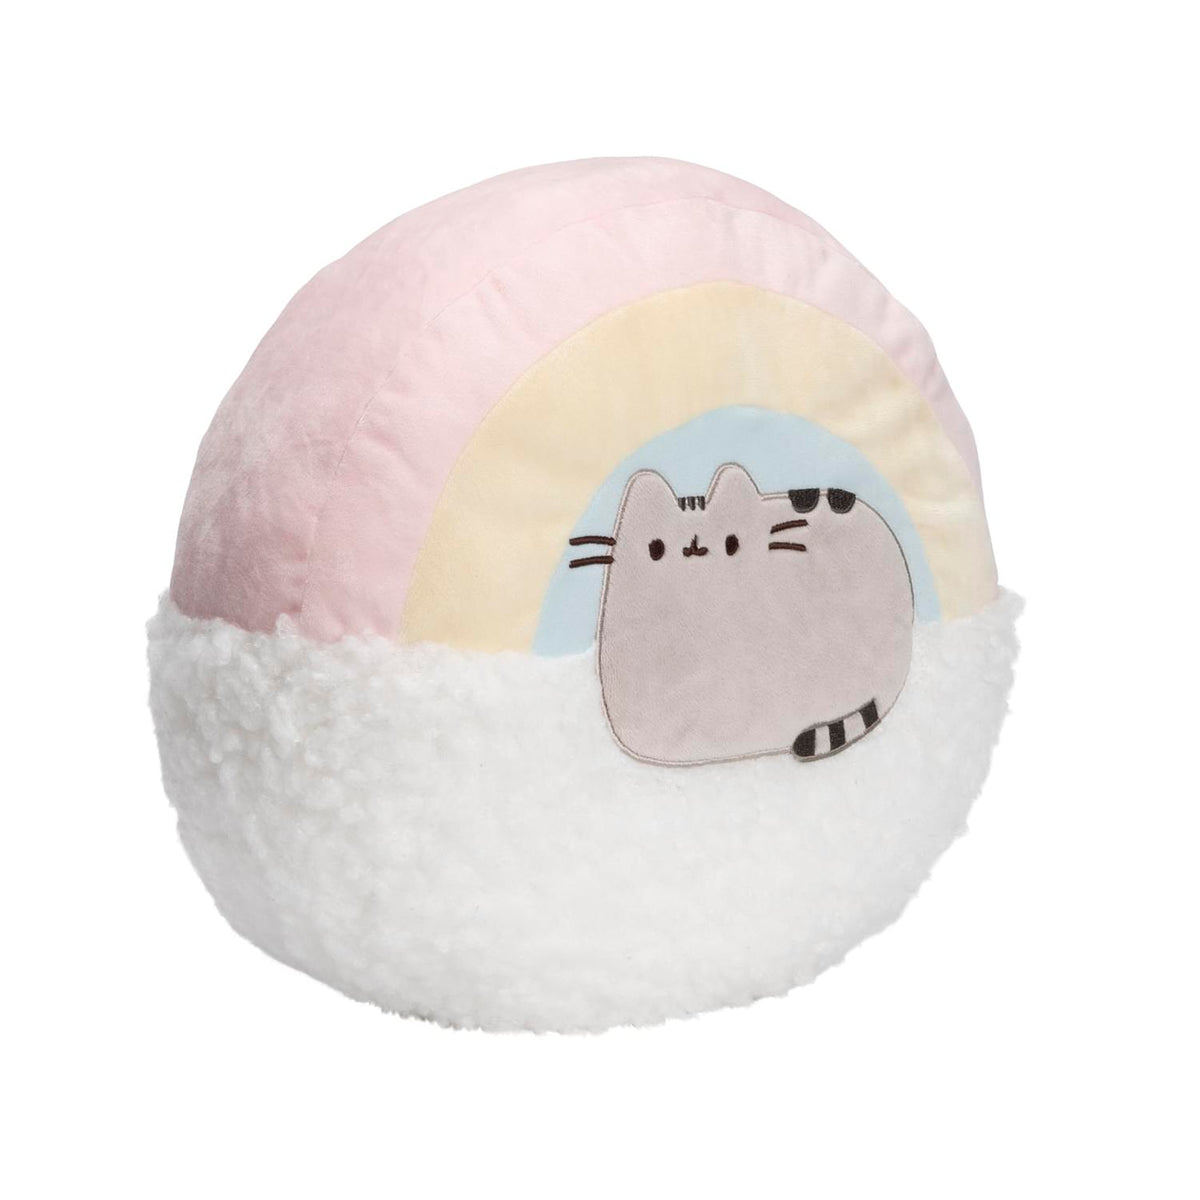 Pusheen with Rainbow 13 Inch Plush Pillow